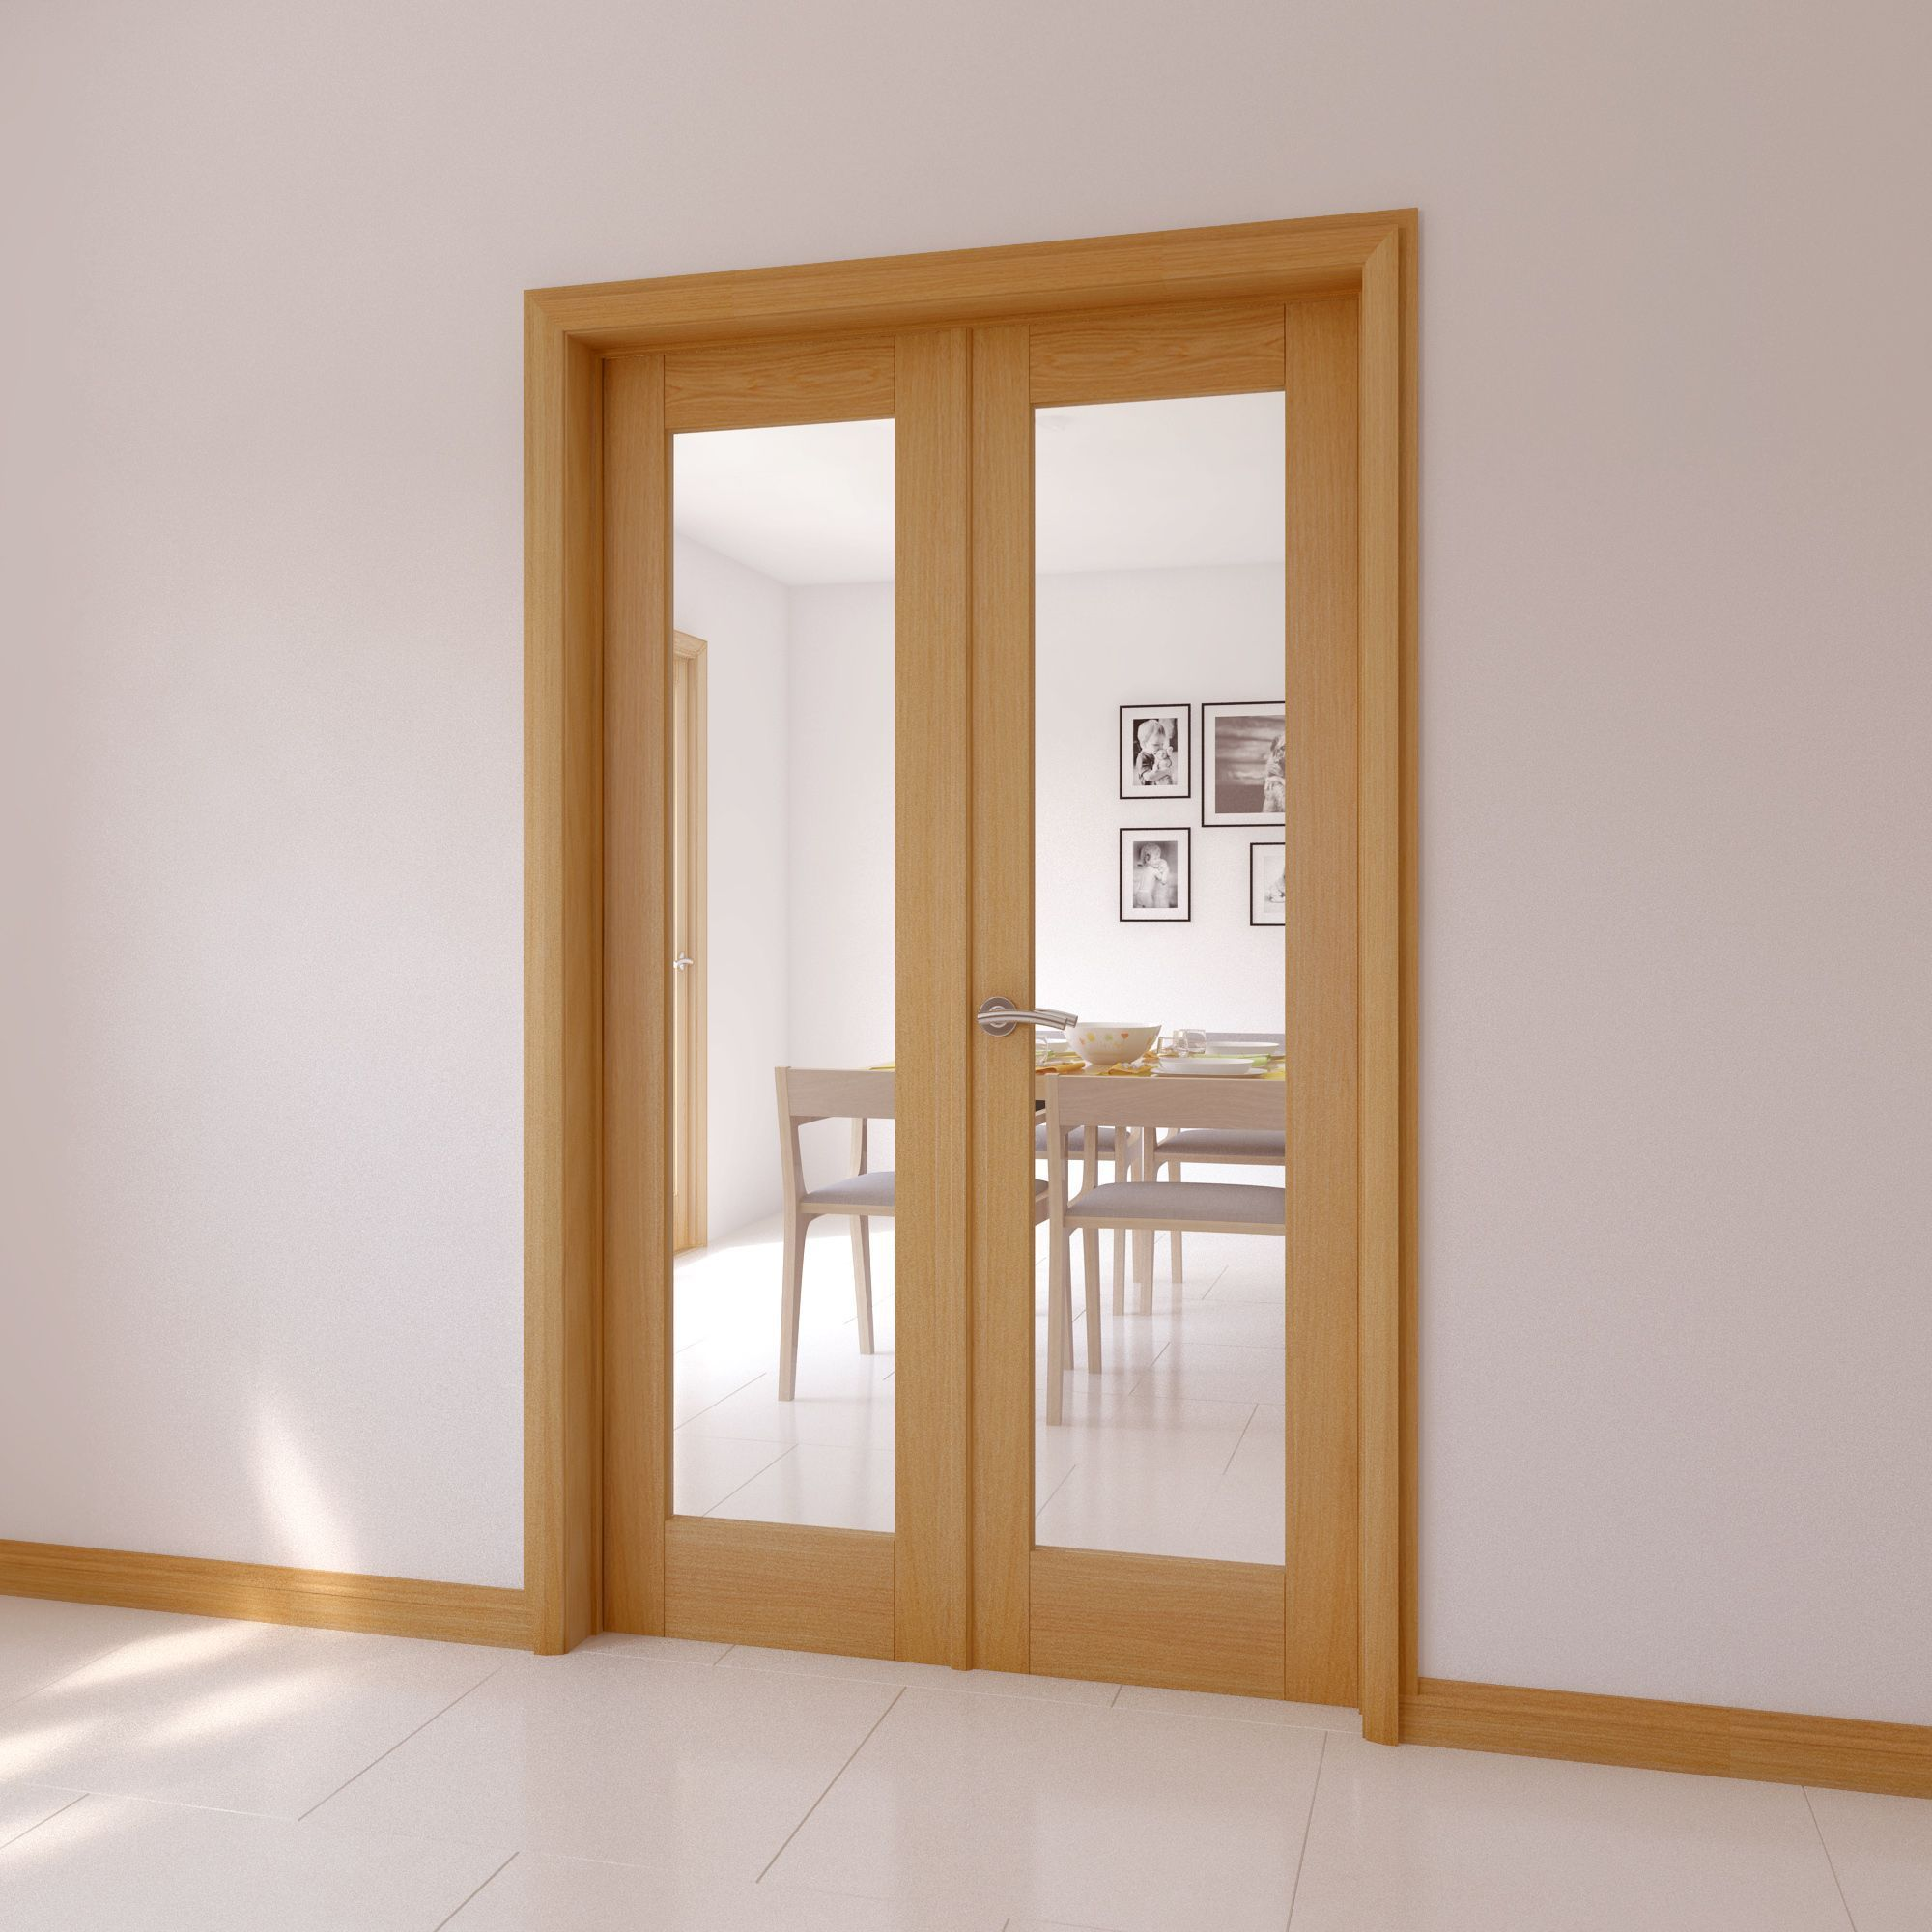 1 Lite Clear Internal French Door H 2030mm W 770mm In 2020 Internal French Doors French Doors Interior Barn Doors